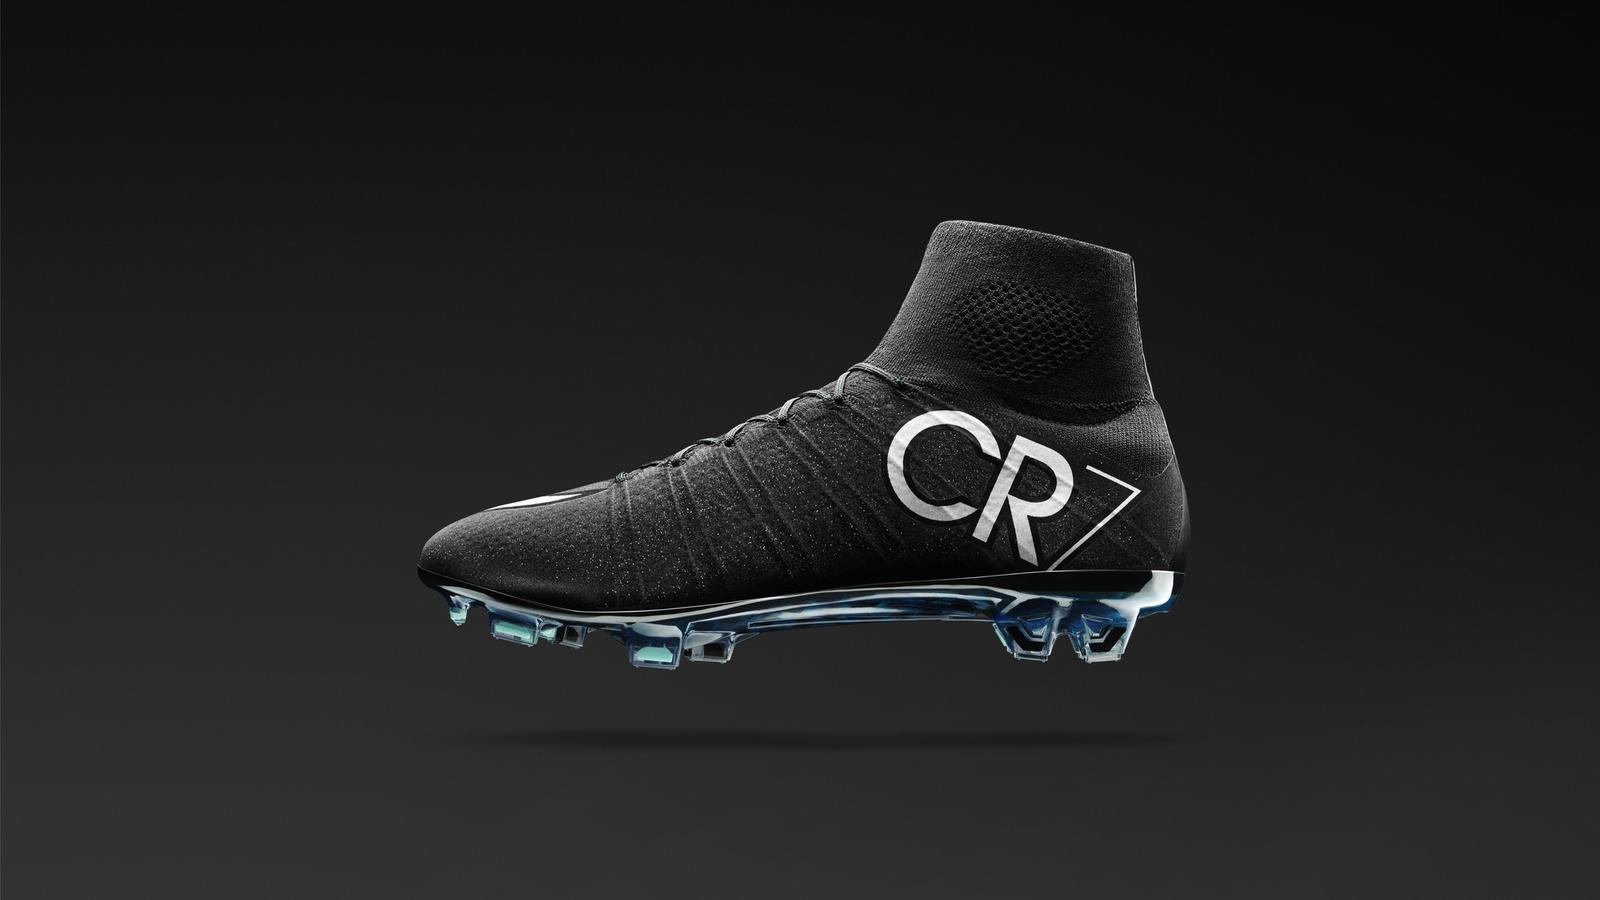 094bf24eb07e Mercurial Superfly CR7 Shines Bright for Cristiano Ronaldo - Nike News